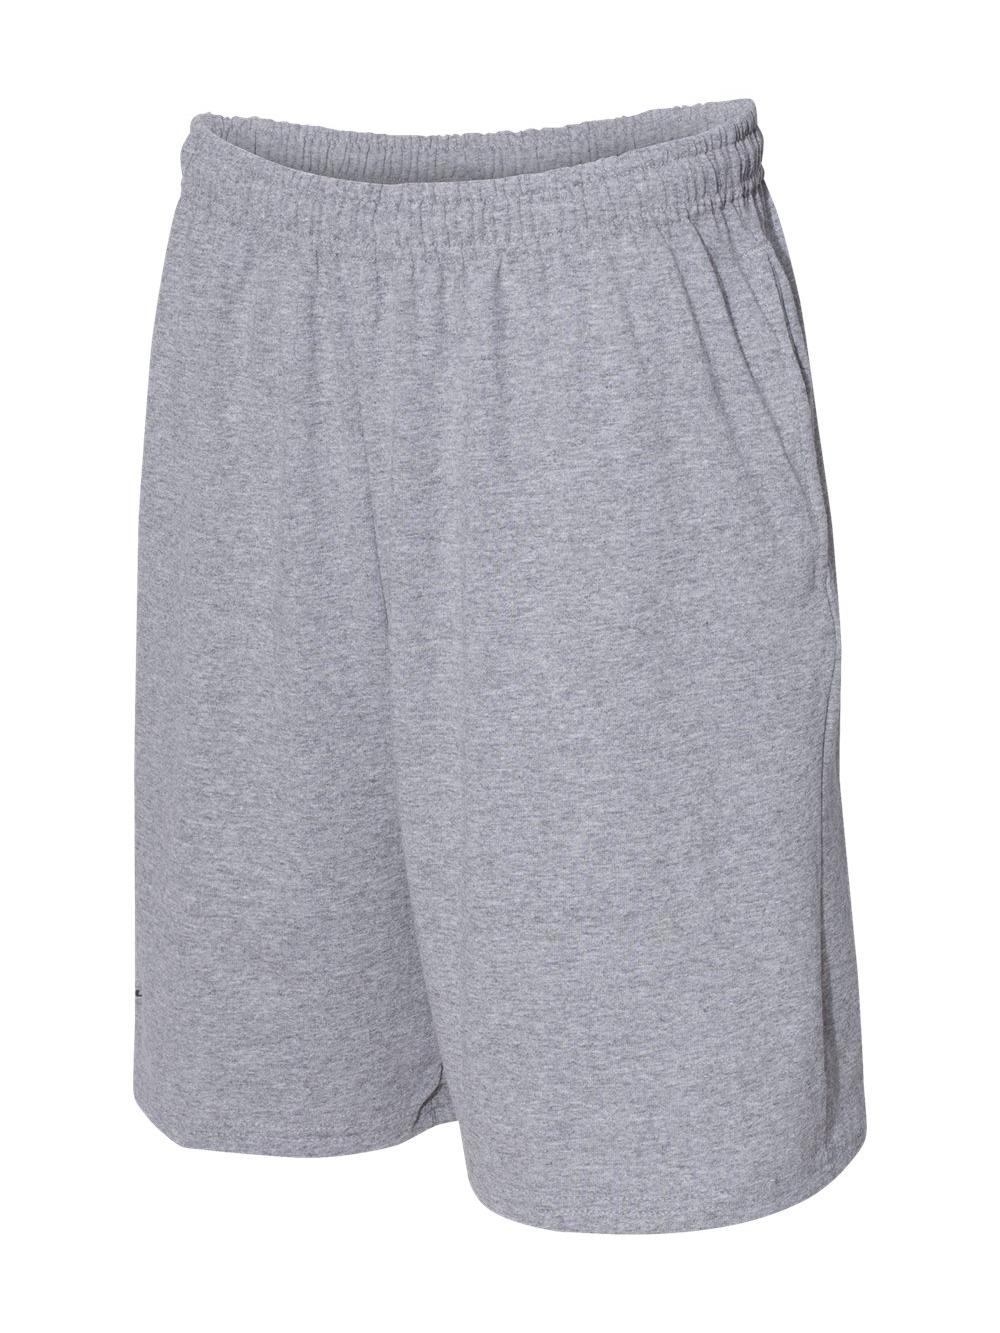 Russell-Athletic-Essential-Jersey-Cotton-Shorts-with-Pockets-25843M thumbnail 13